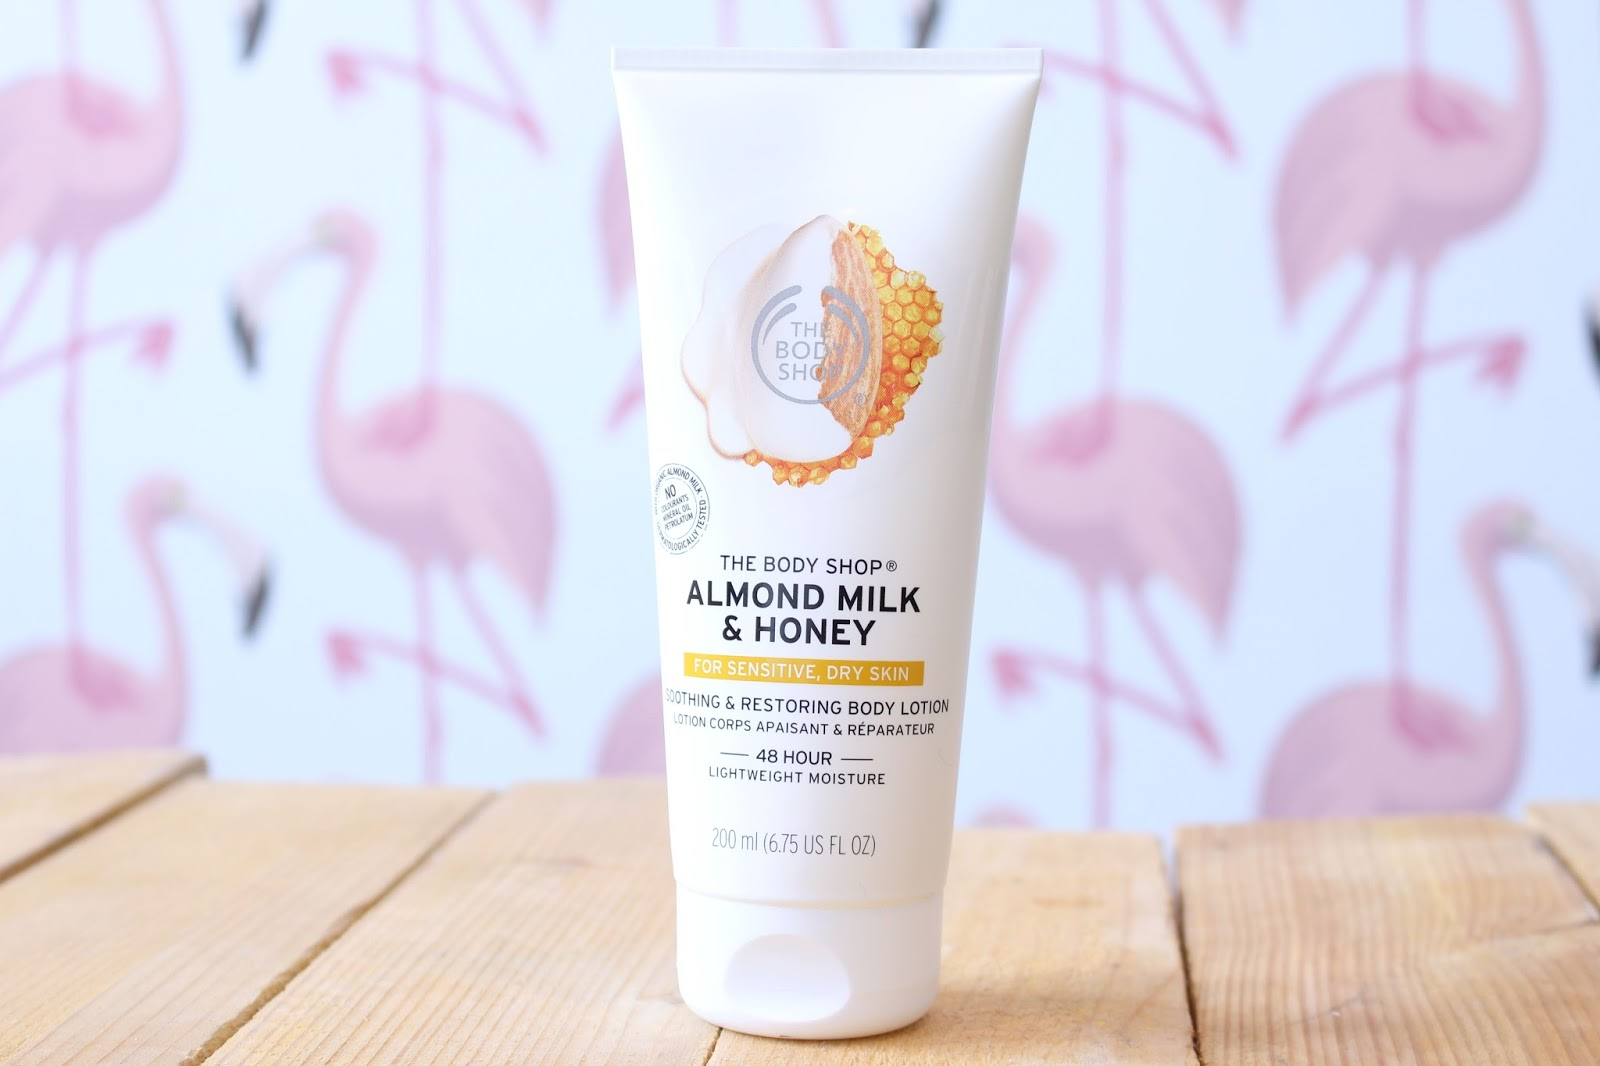 The Body Shop Almond Milk Honey